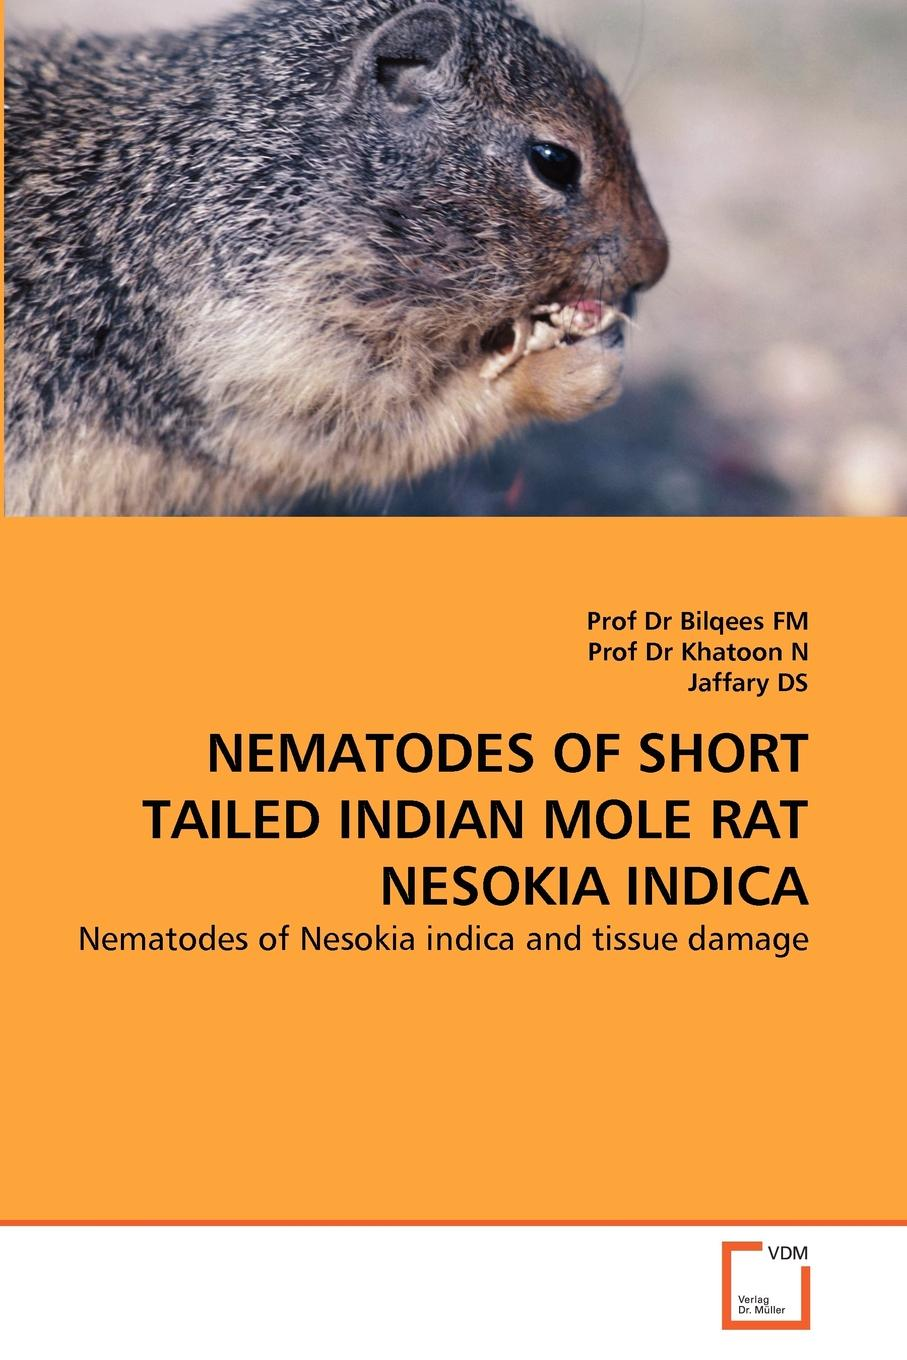 Prof Dr Bilqees FM, Prof Dr Khatoon N, Jaffary DS NEMATODES OF SHORT TAILED INDIAN MOLE RAT NESOKIA INDICA недорго, оригинальная цена